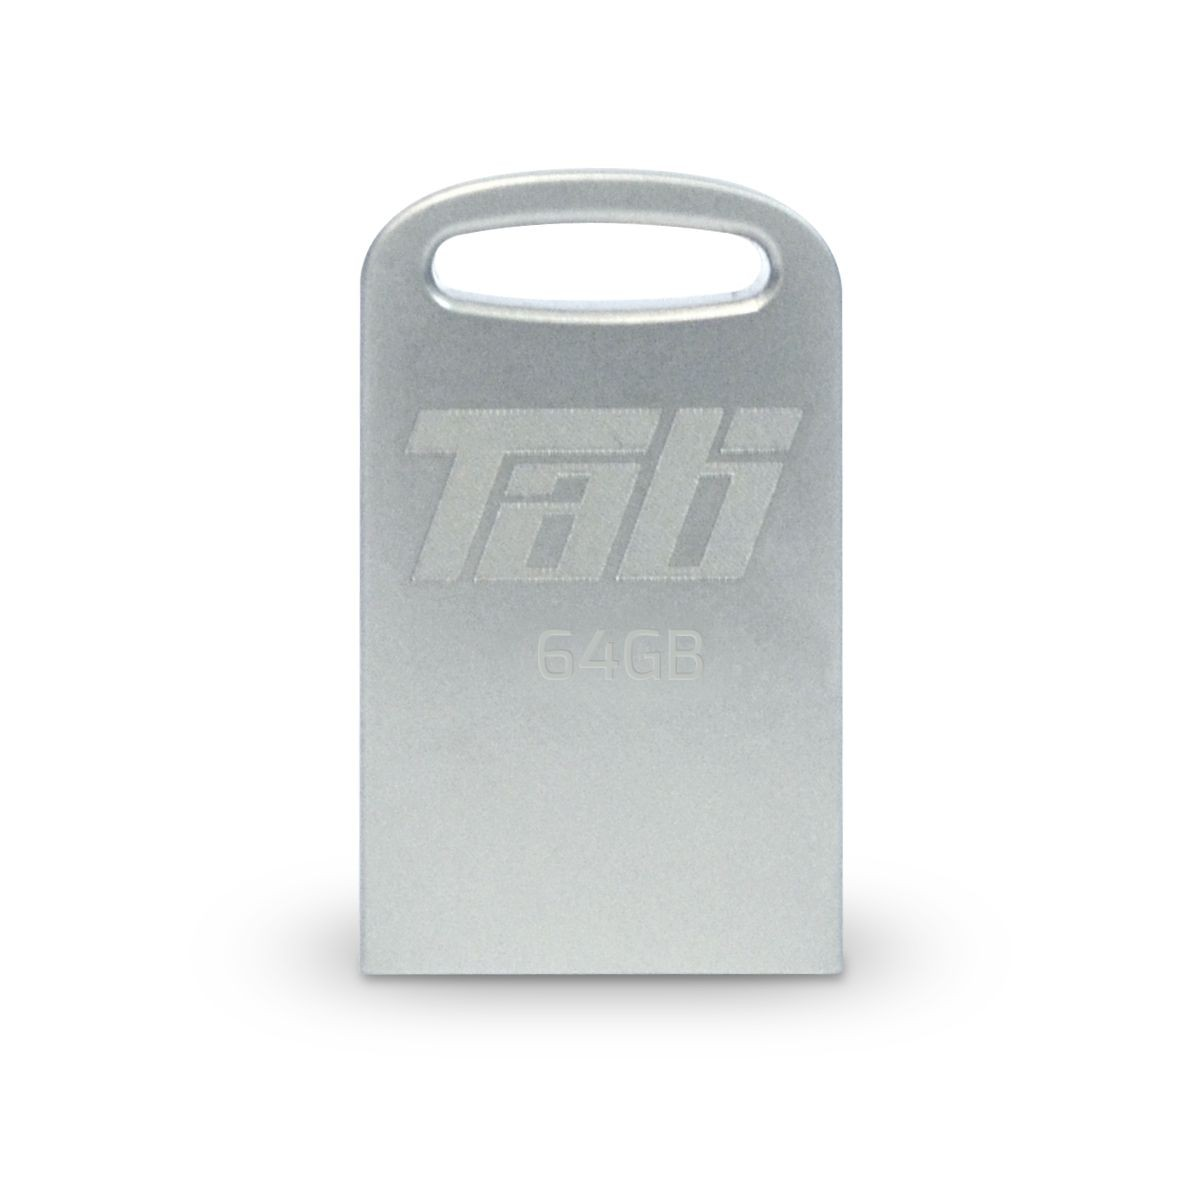 Patriot Tab flashdrive 64GB USB 3.0 aluminium case